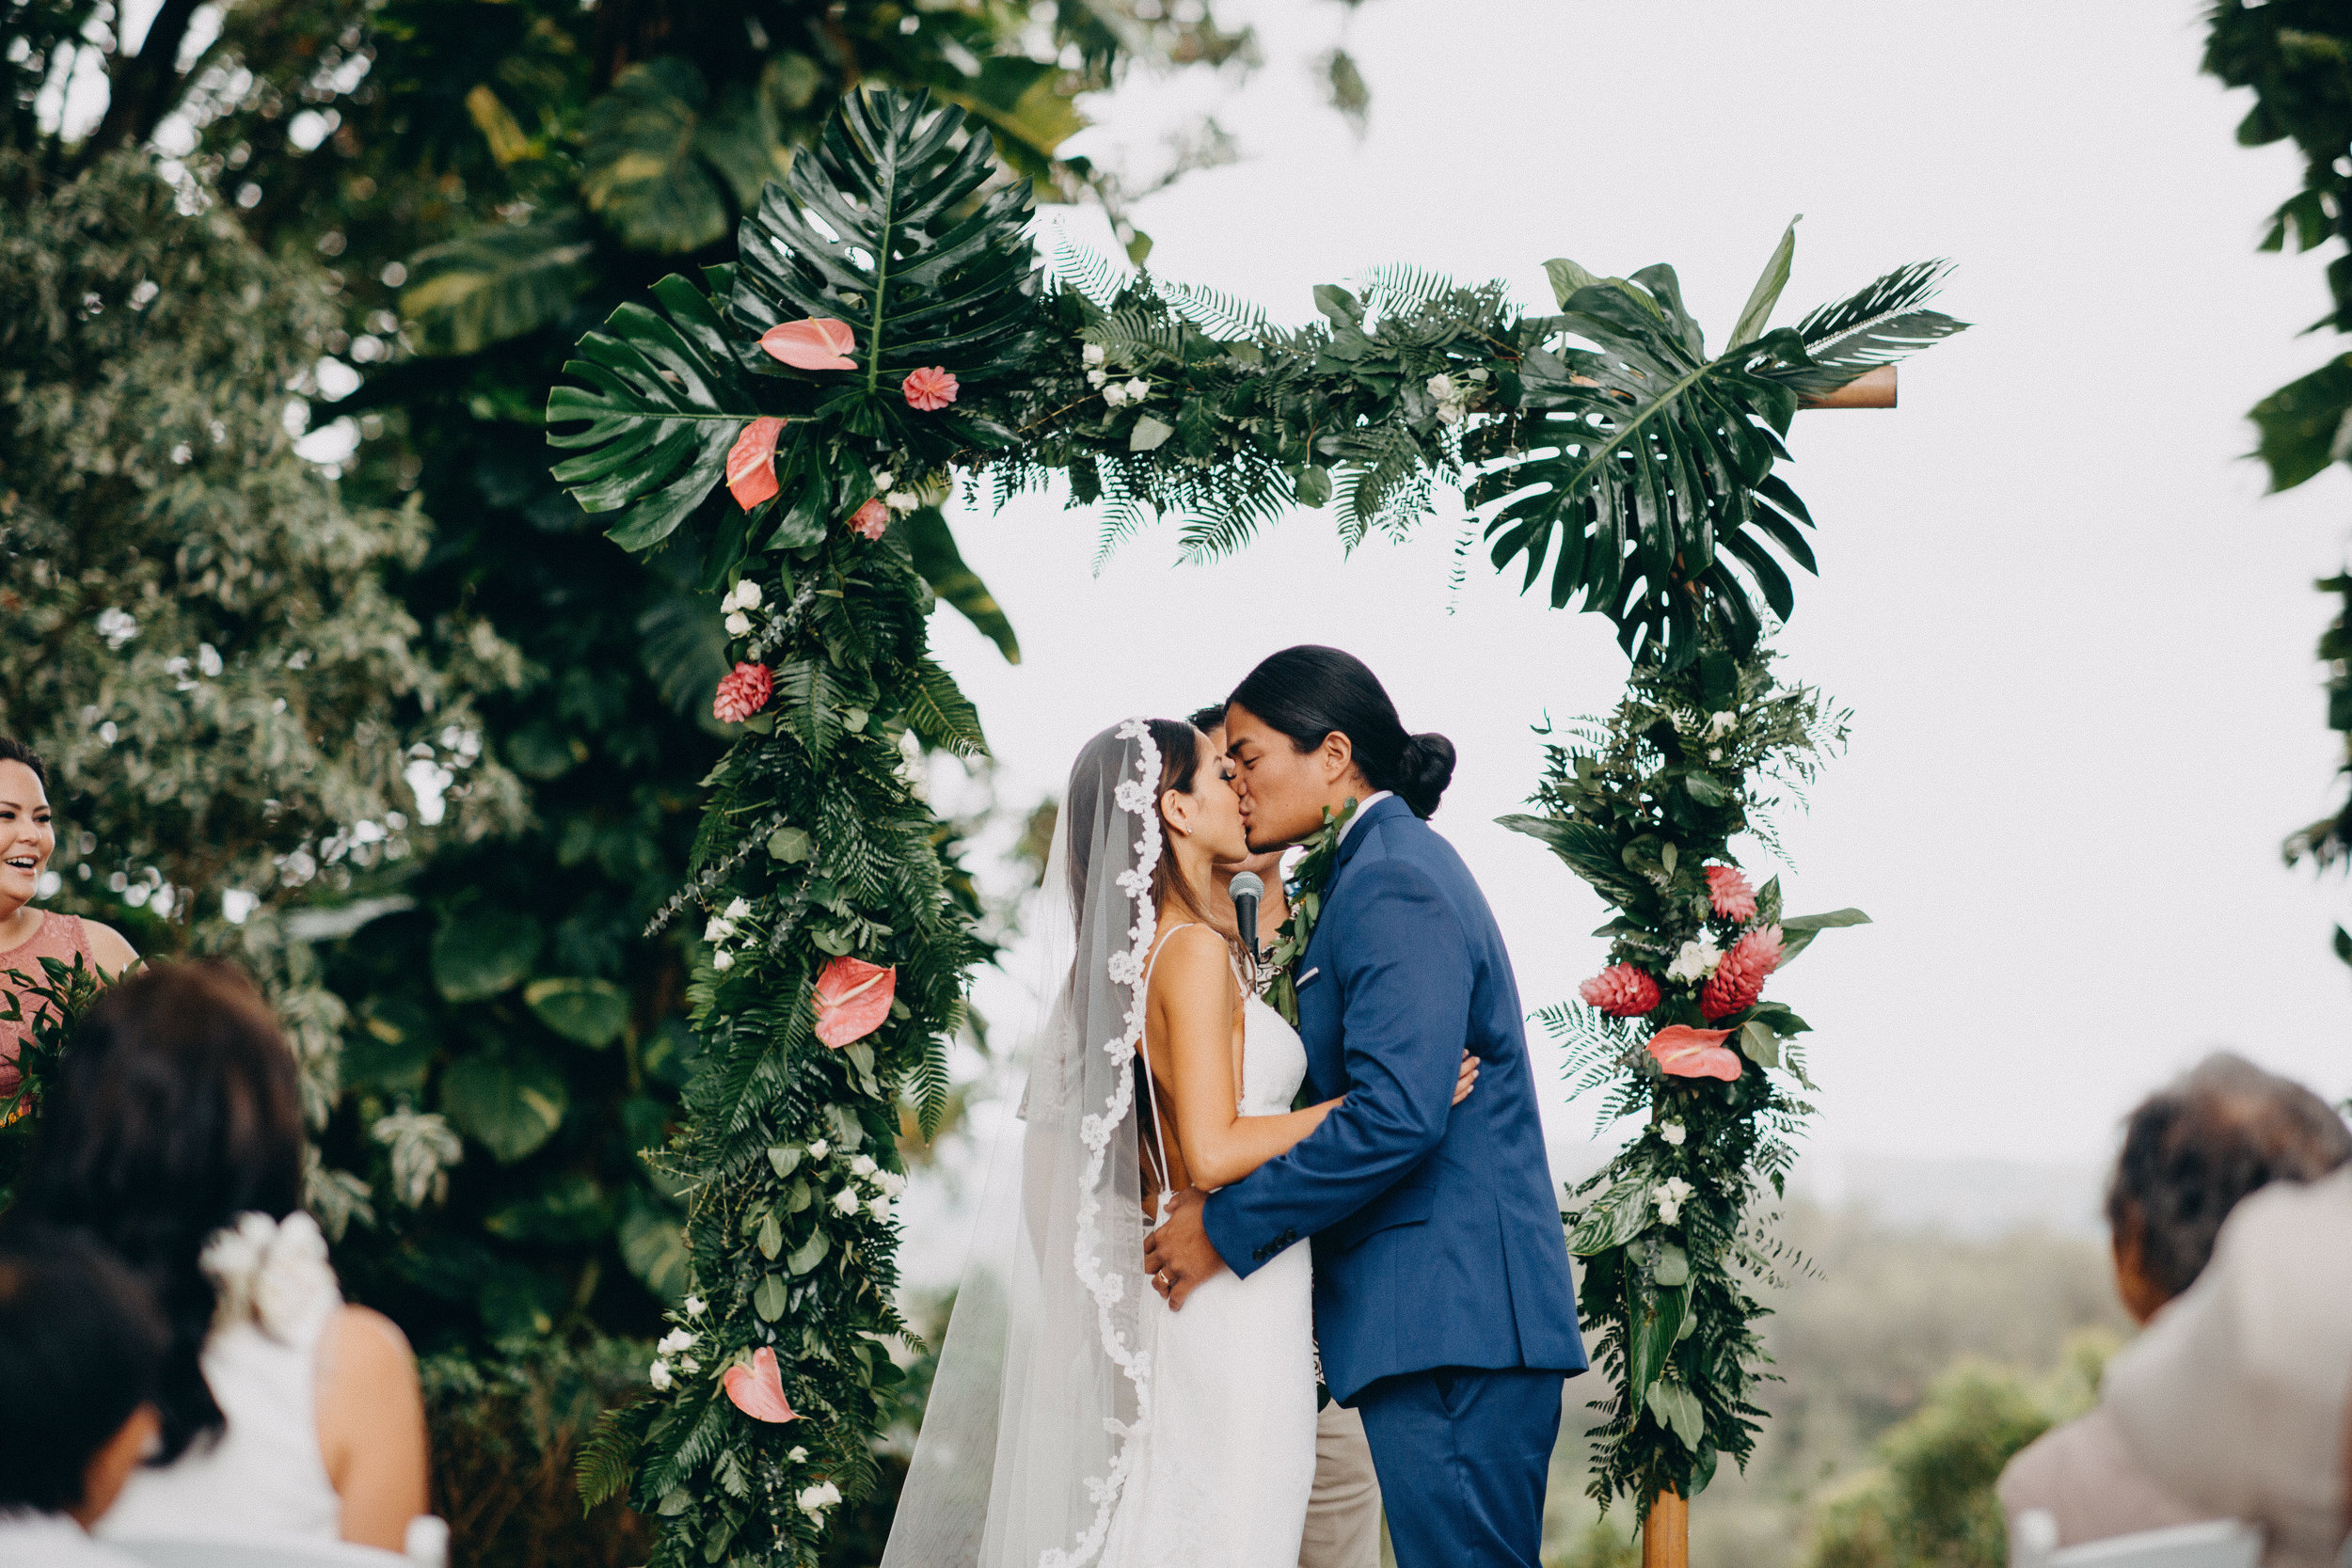 Ellise&Armando-339.jpg